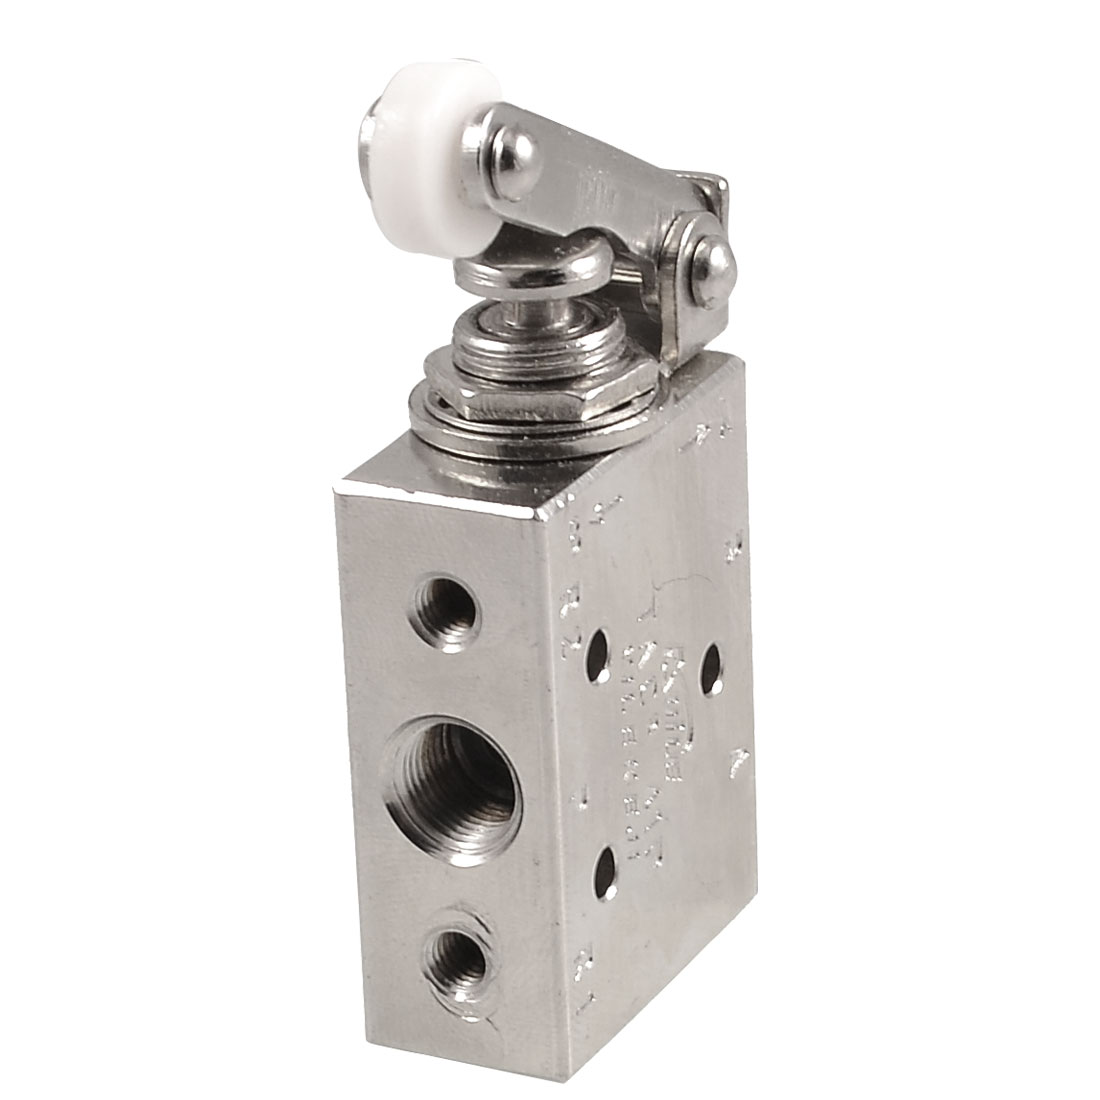 Silver Tone Alloy 2 Position 5 Way Roller Lever Mechanical Valve